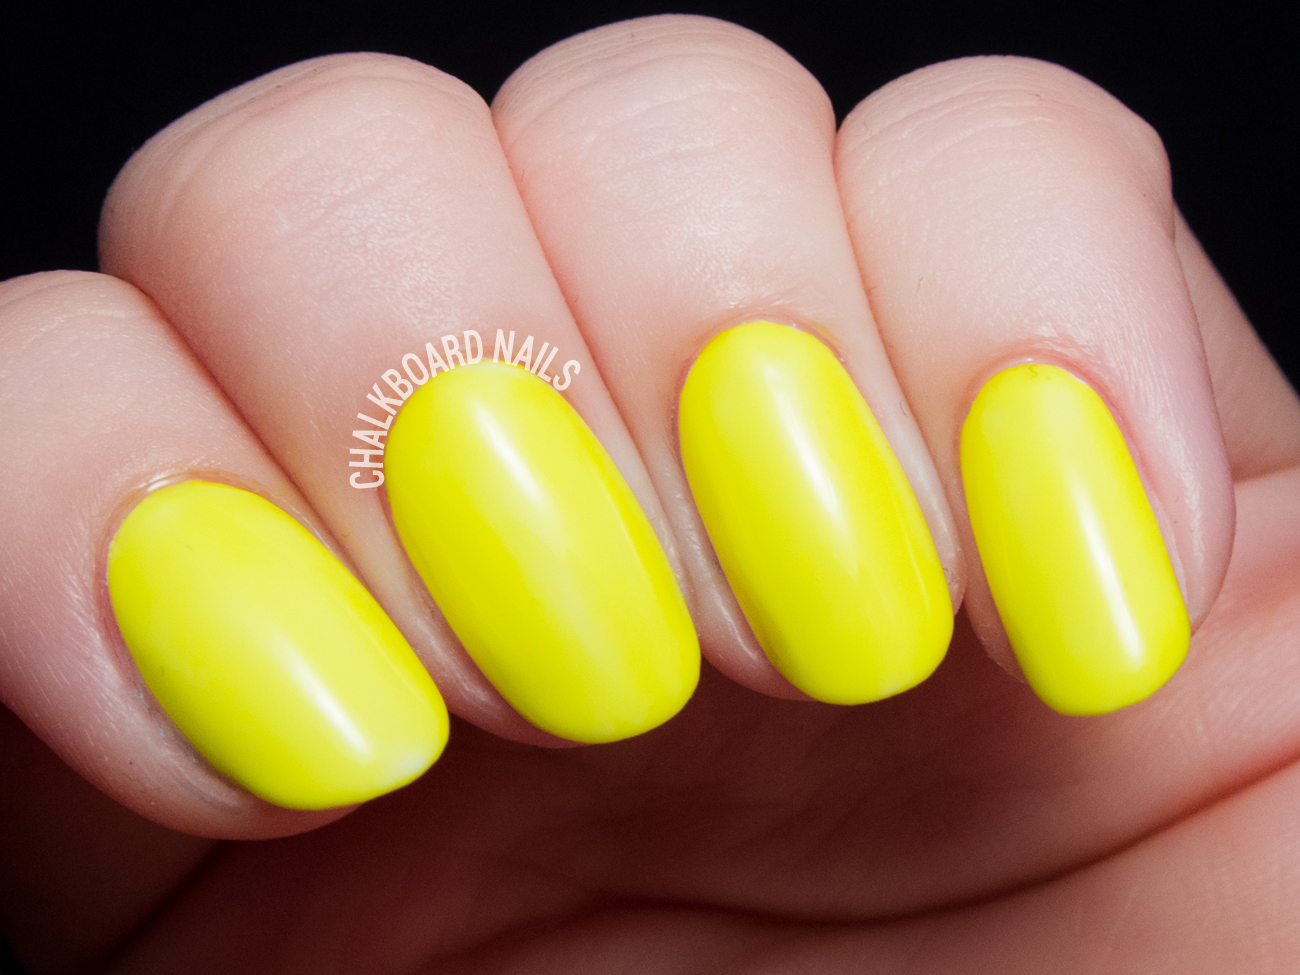 China Glaze Daisy Know My Name? via @chalkboardnails